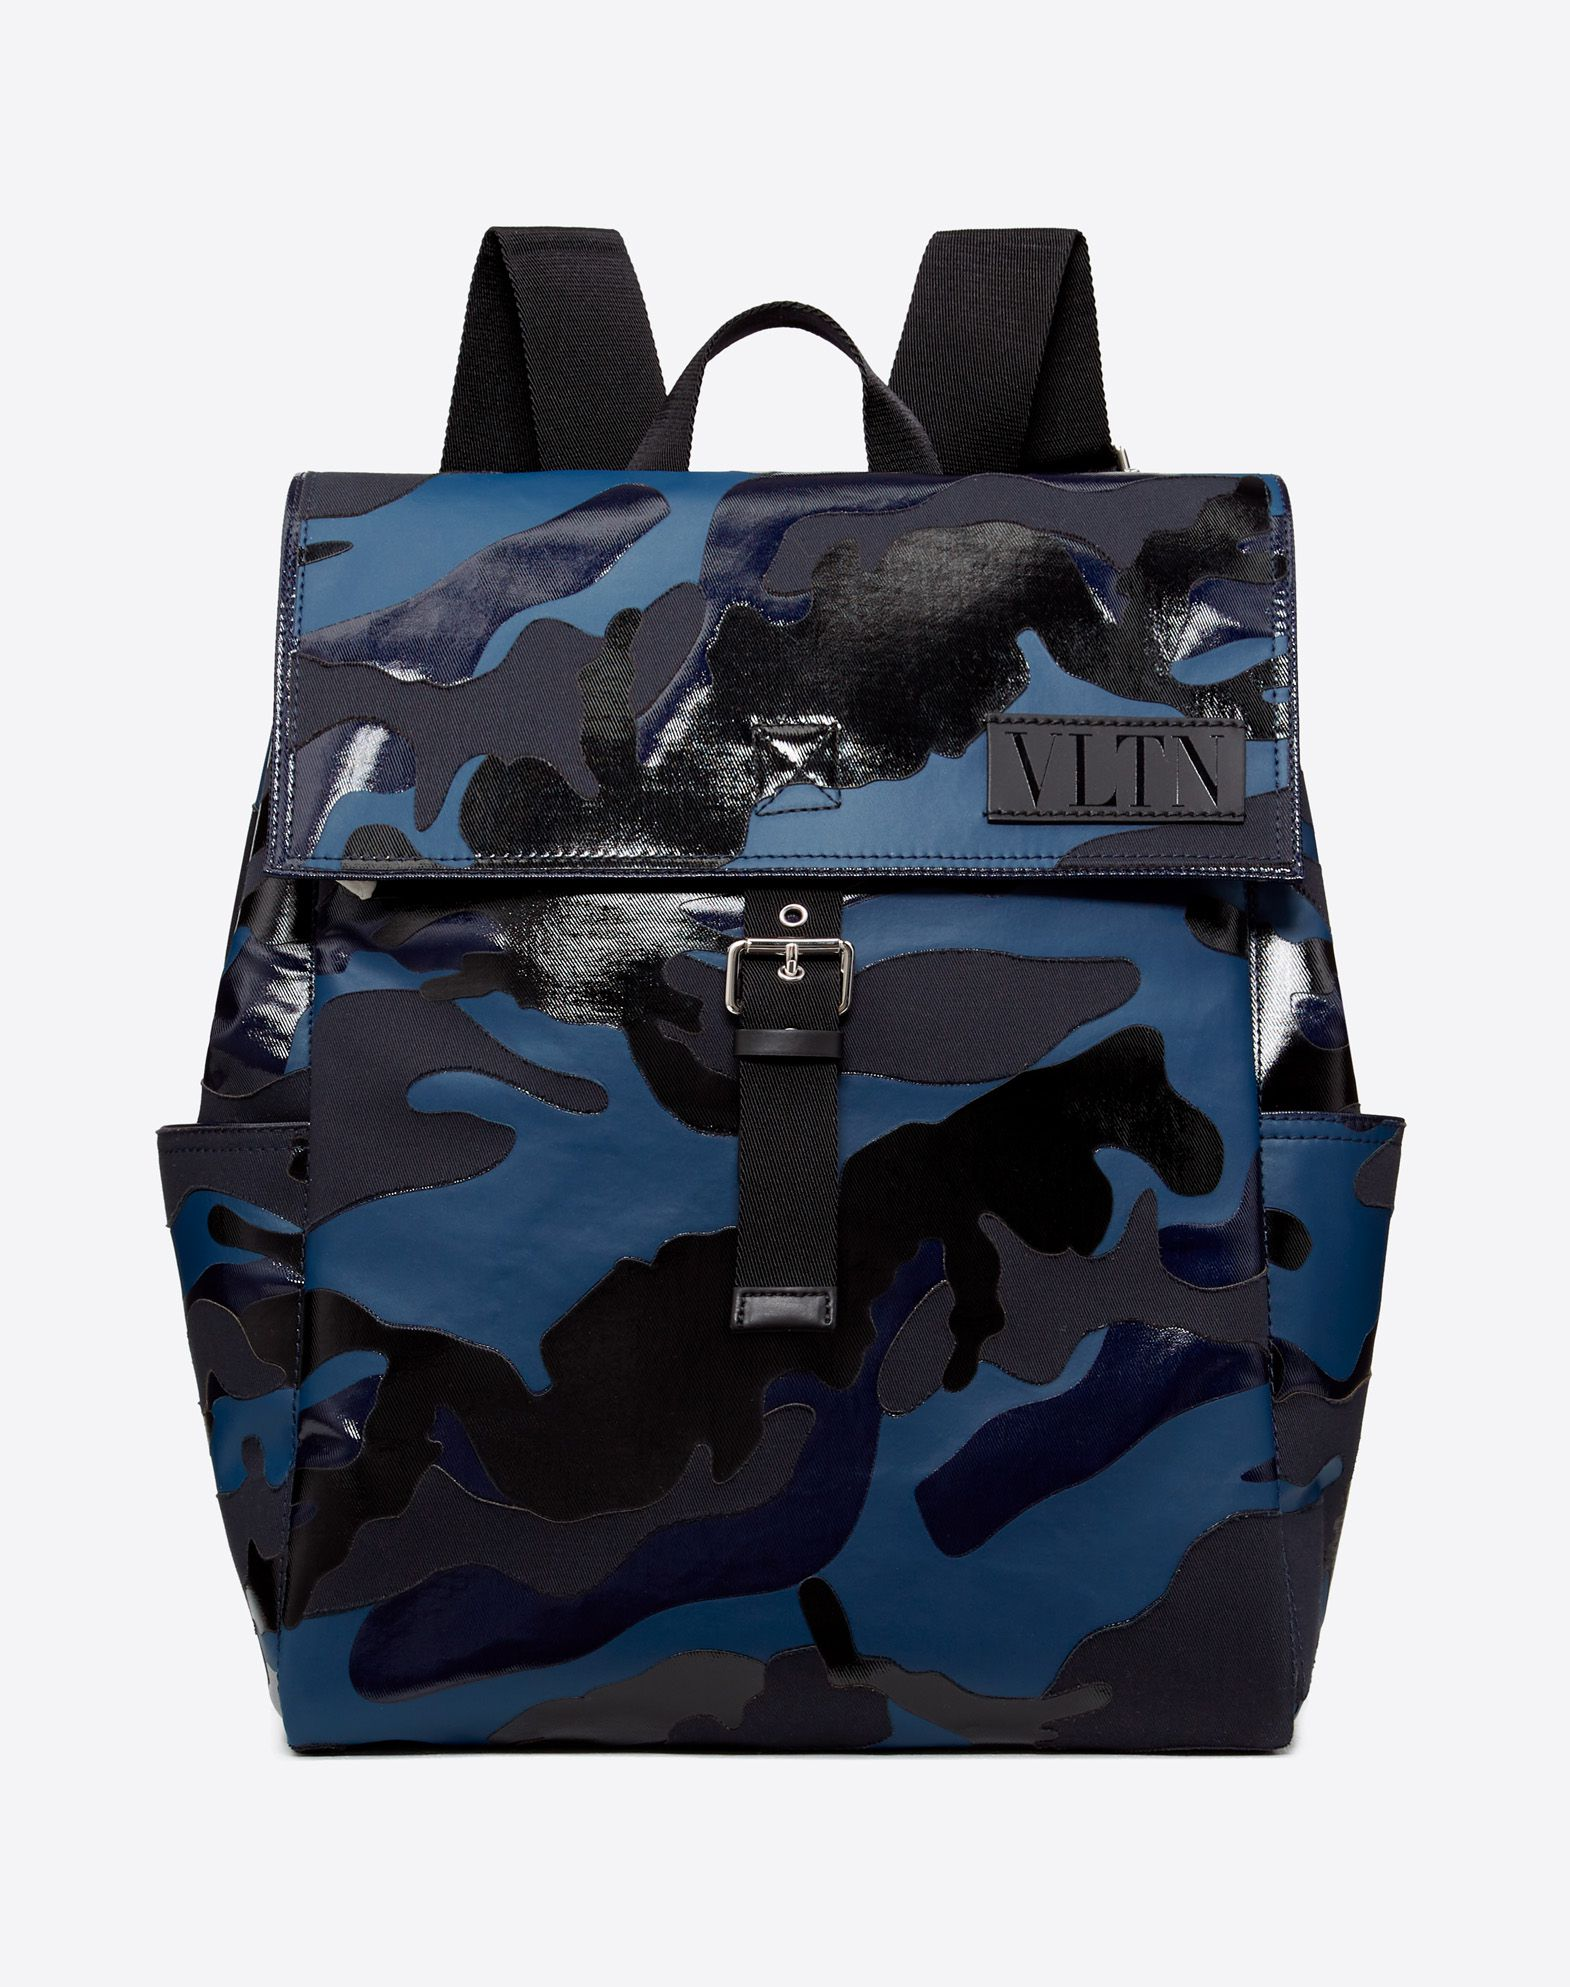 VLTN CAMOUFLAGE SHINY CANVAS BACKPACK